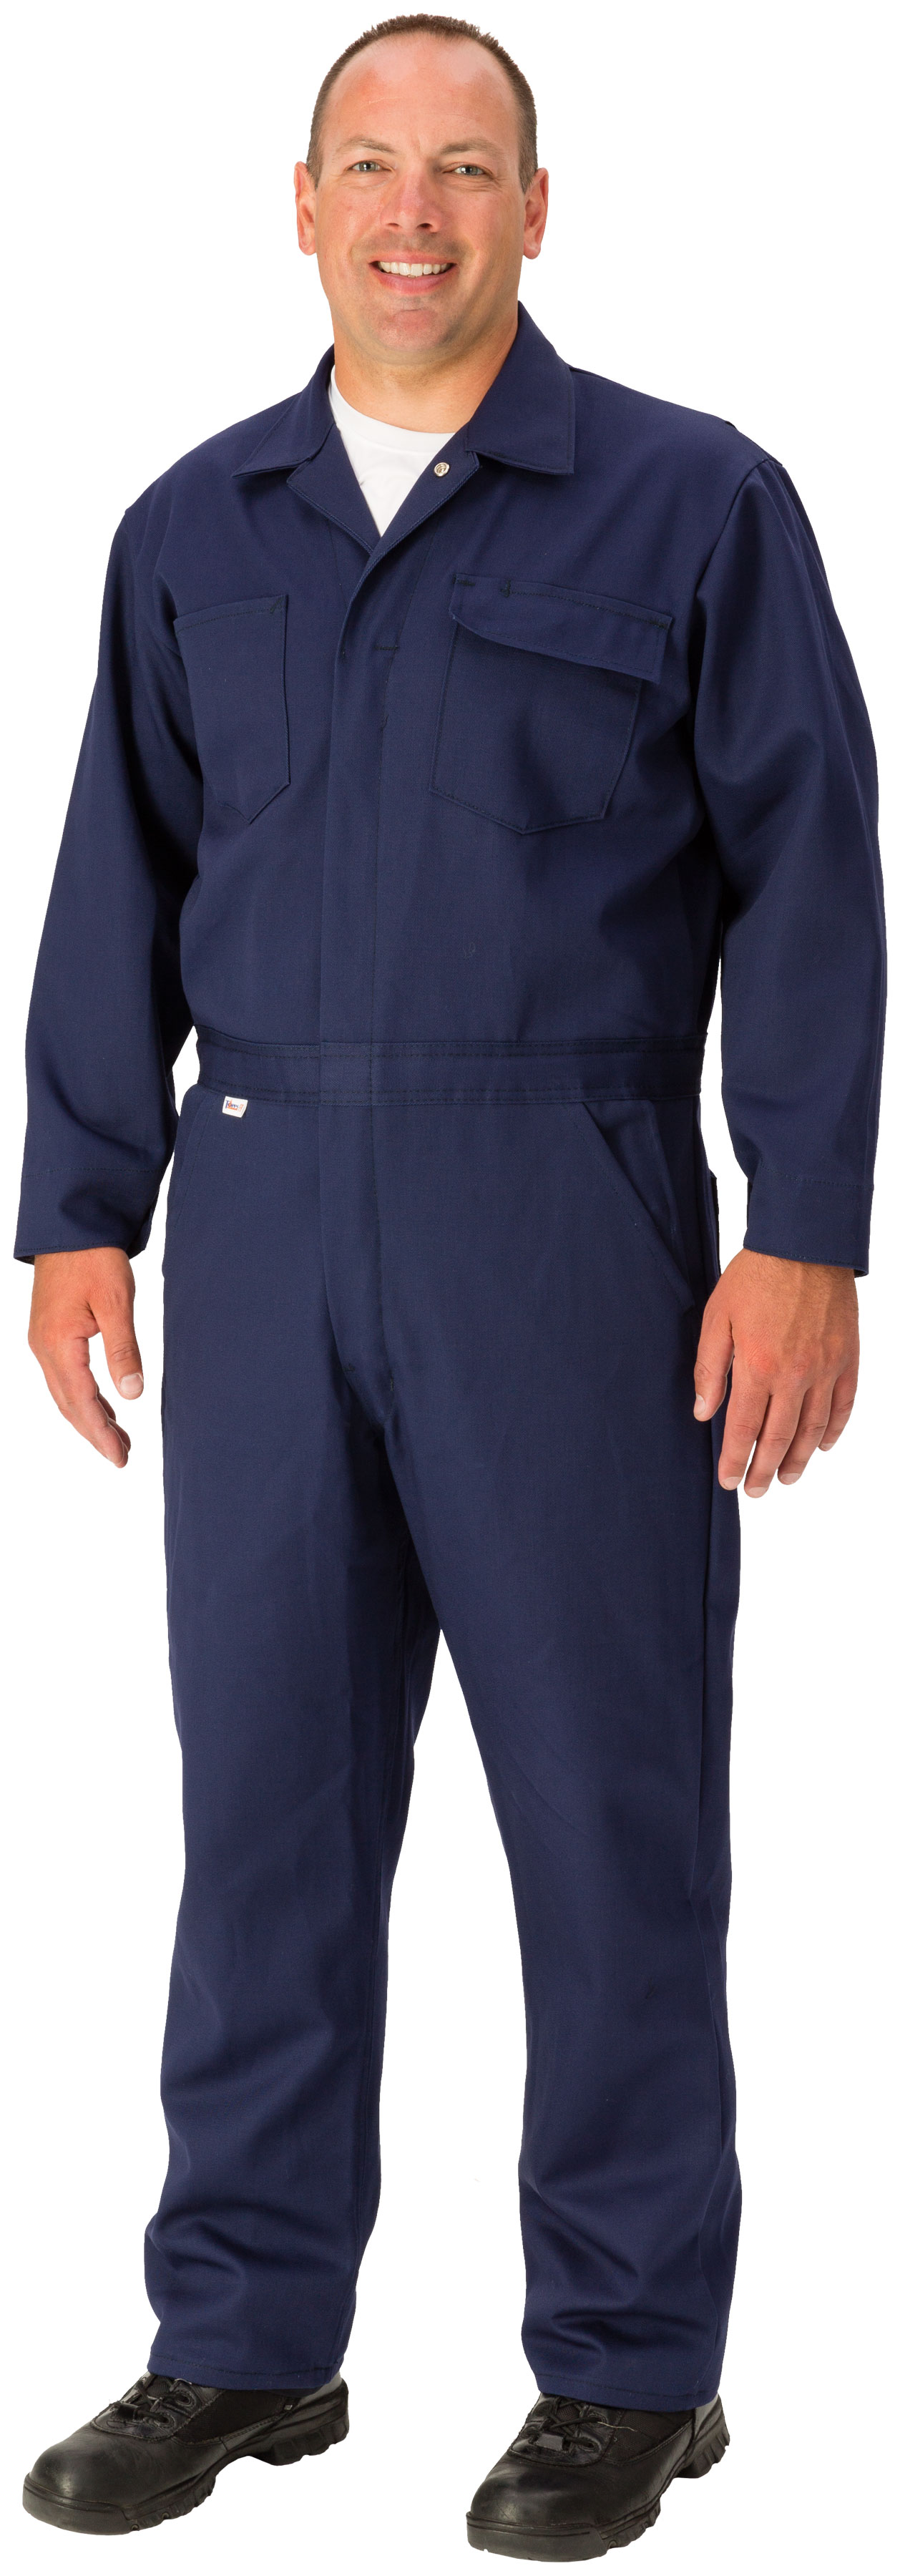 Indura® Economy Coverall-Topps Safety Apparel